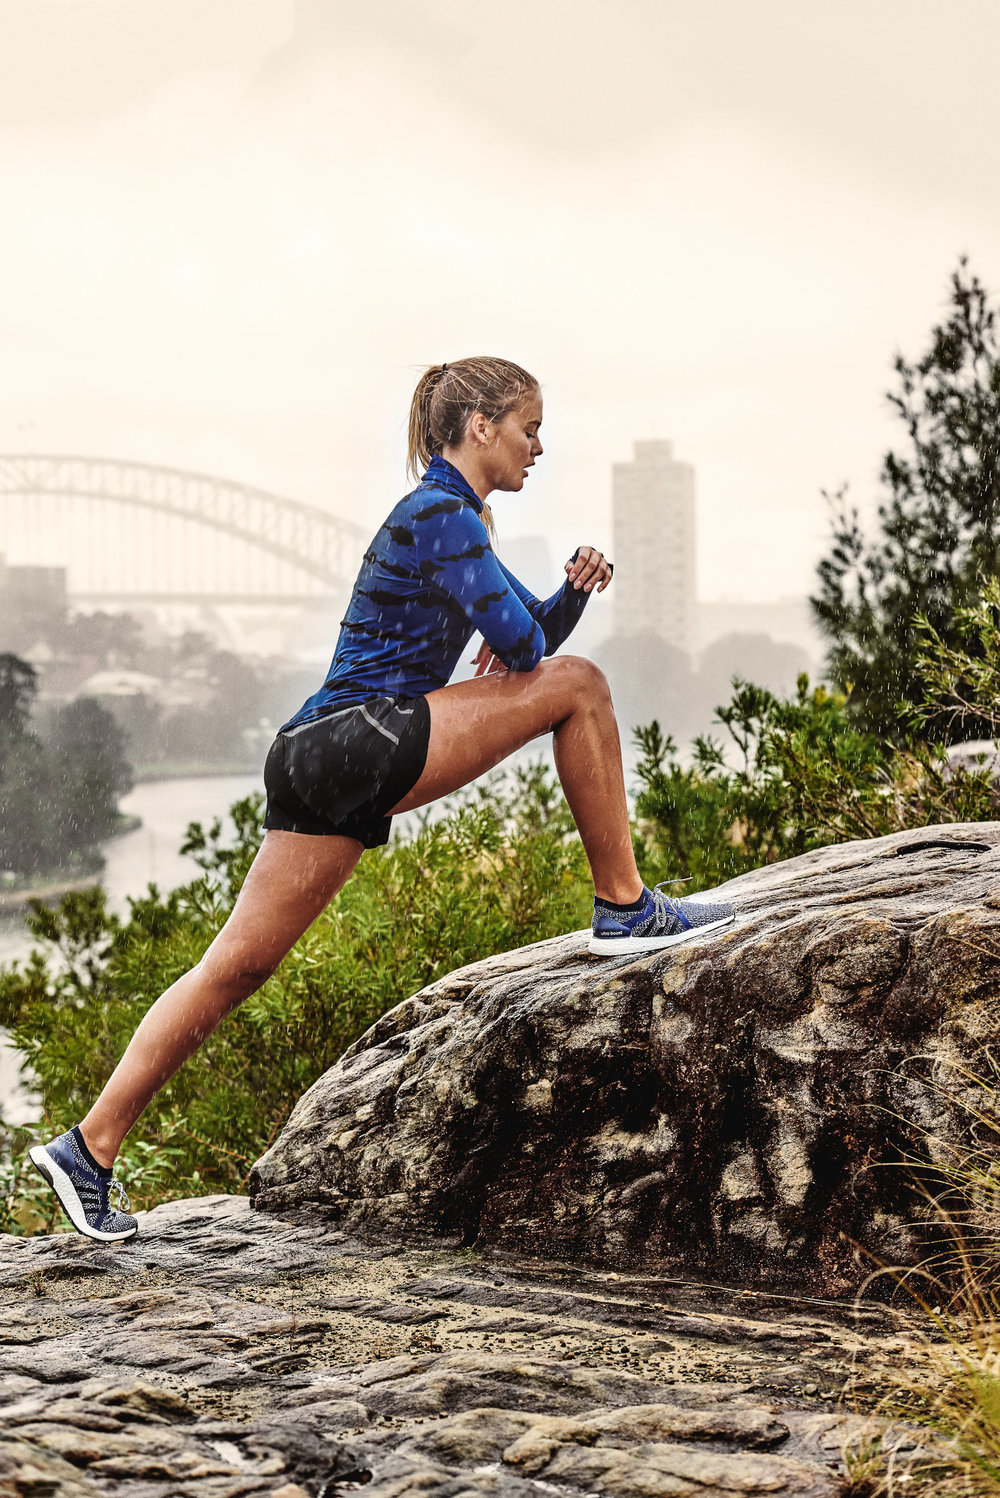 Steph Claire Smith, in the rain for Adidas Australia. Sydney Harbour Bridge in the background.